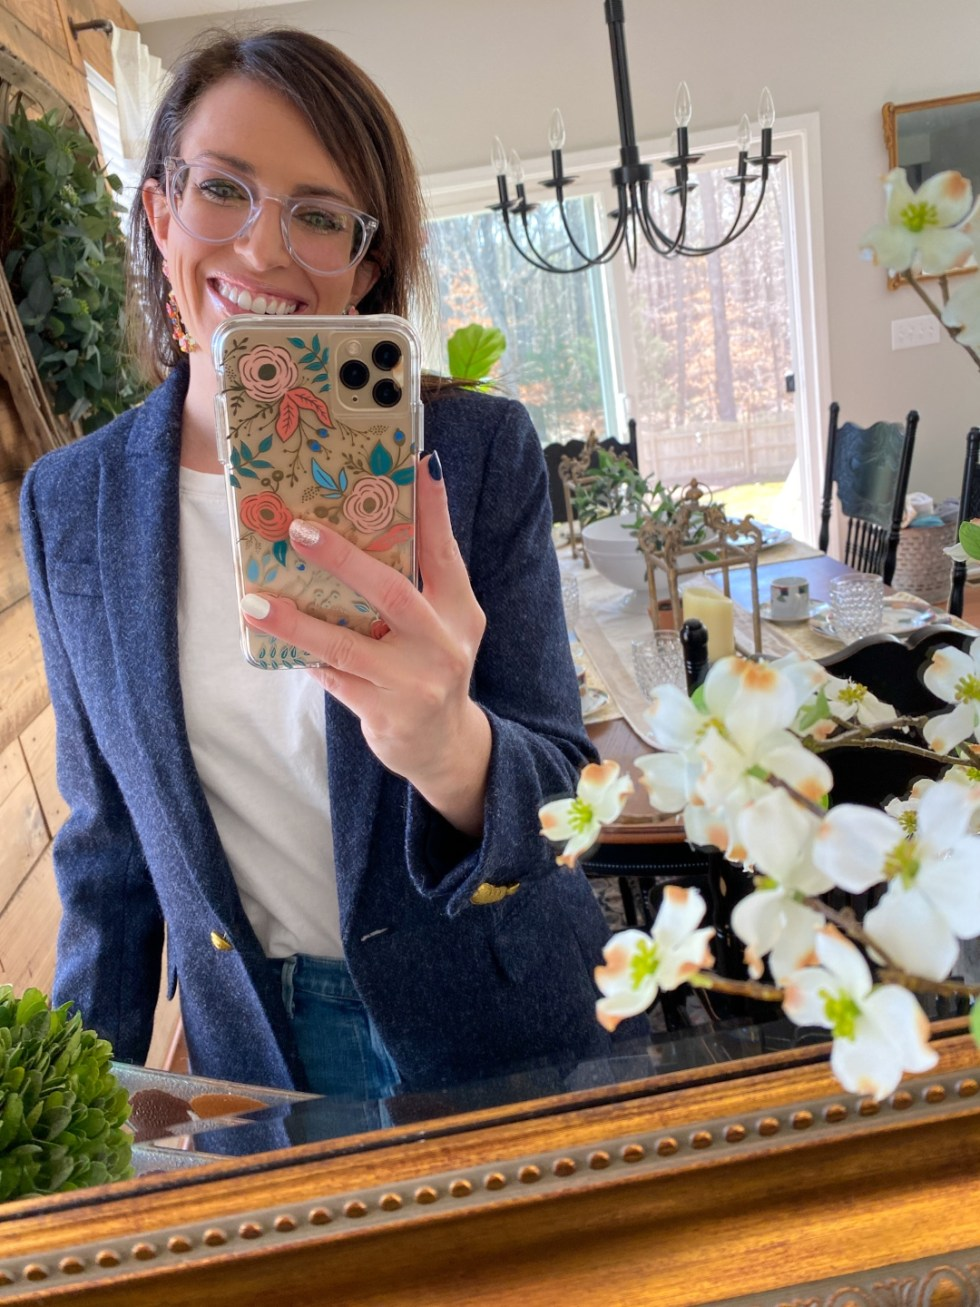 See With Style: Warby Parker Eye Glasses - I'm Fixin' To - @imfixintoblog |Warby Parker Eye Glasses by popular NC fashion blog, I'm Fixin' To: image of a woman wearing a pair of Warby Parker glasses.